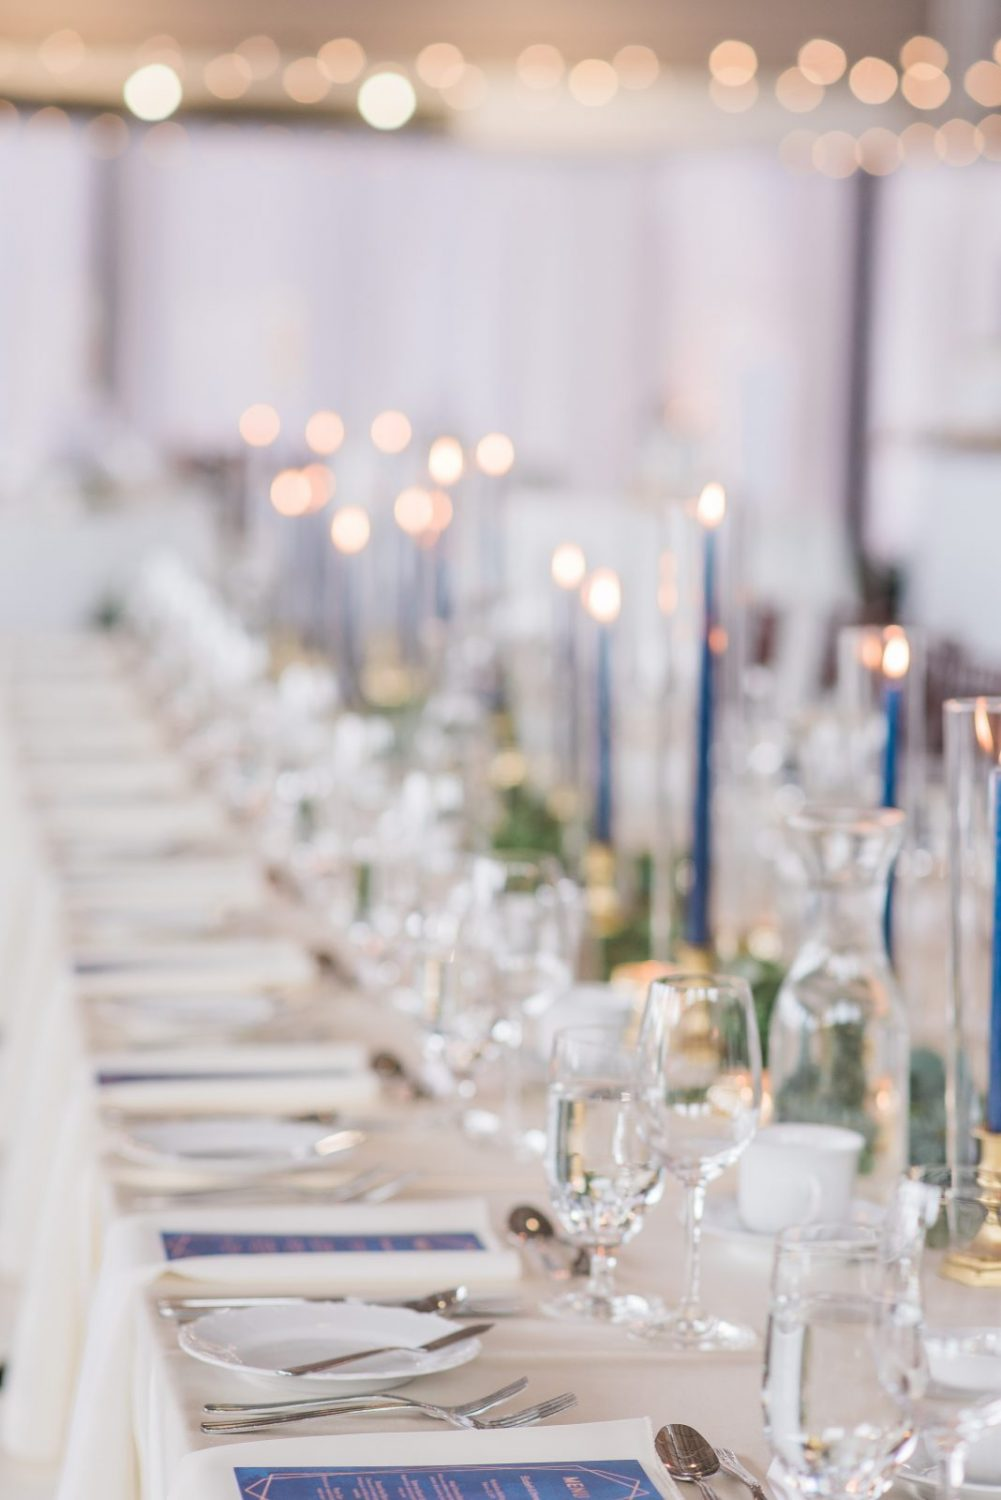 Ottawa wedding decor comapny Sage Events - Horticulture Building - Winter wedding tapered candles in navy - Photography by emma